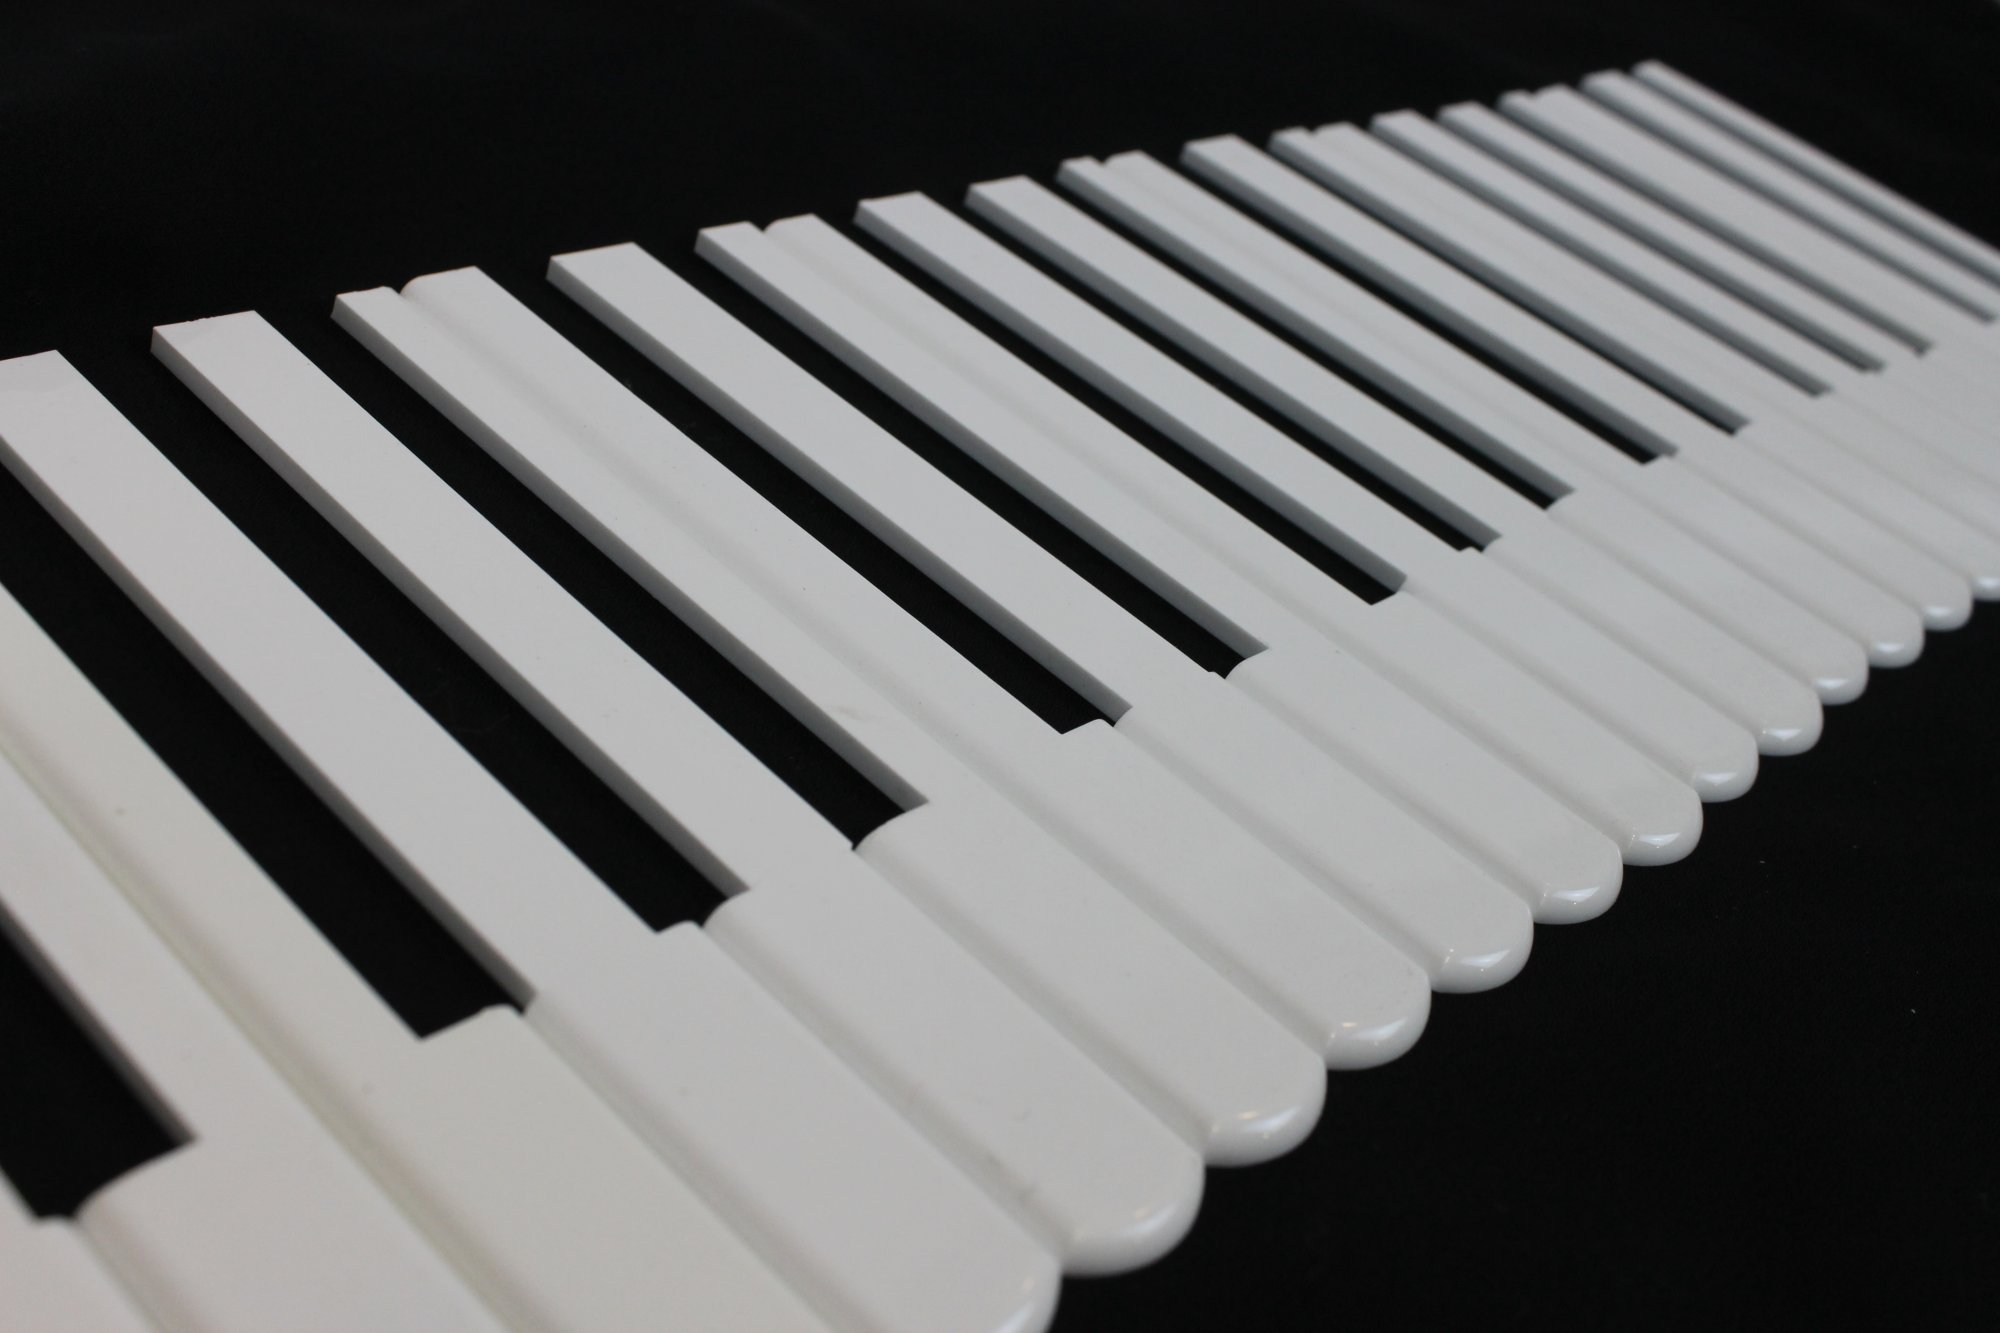 Piano Accordion Part - Set of 24 Pre-Cut White Key Tops 19.2mm Width